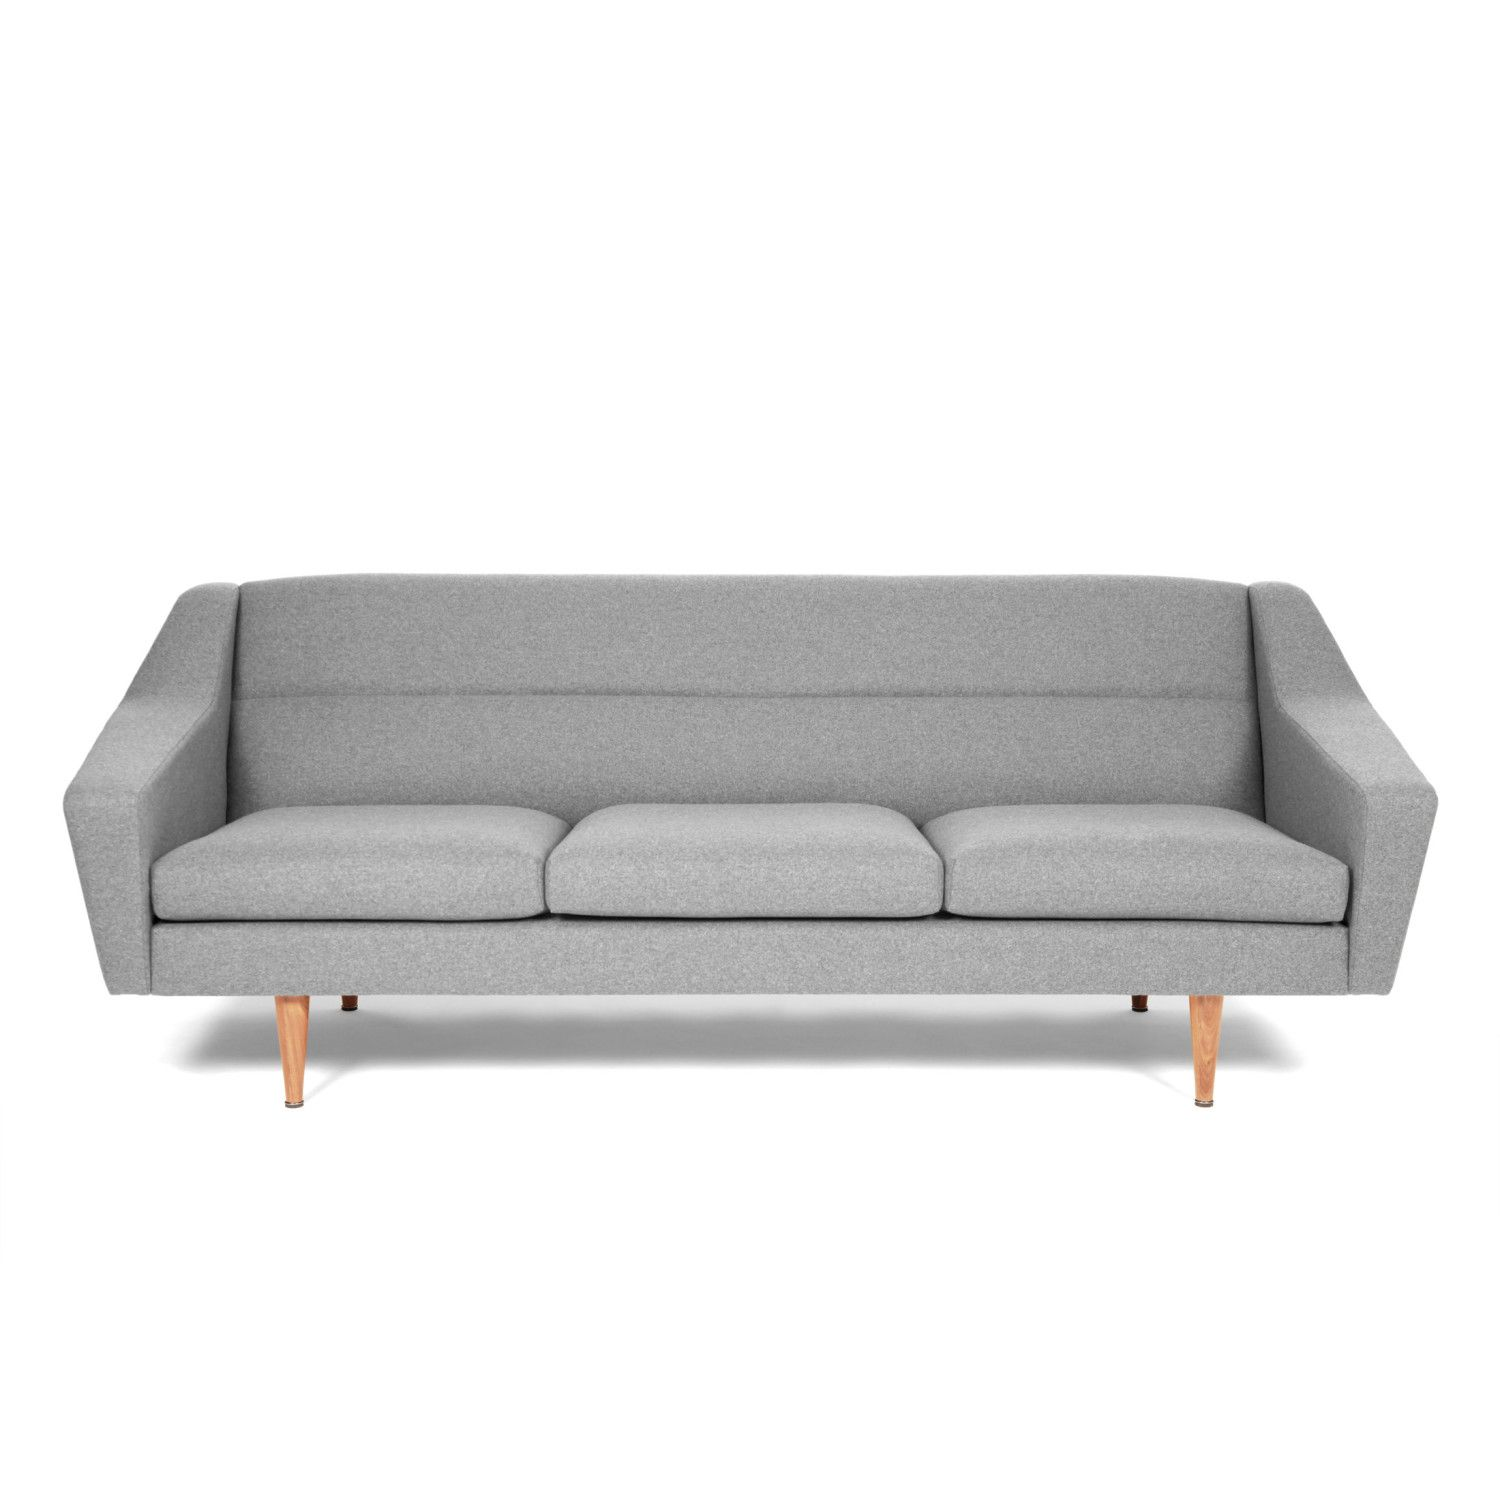 COSMO Is A High Quality Sofa Designed And Handmade In Estonia. Despite Its  Sharp Shape, The Sofa Is Extremely Comfortable.